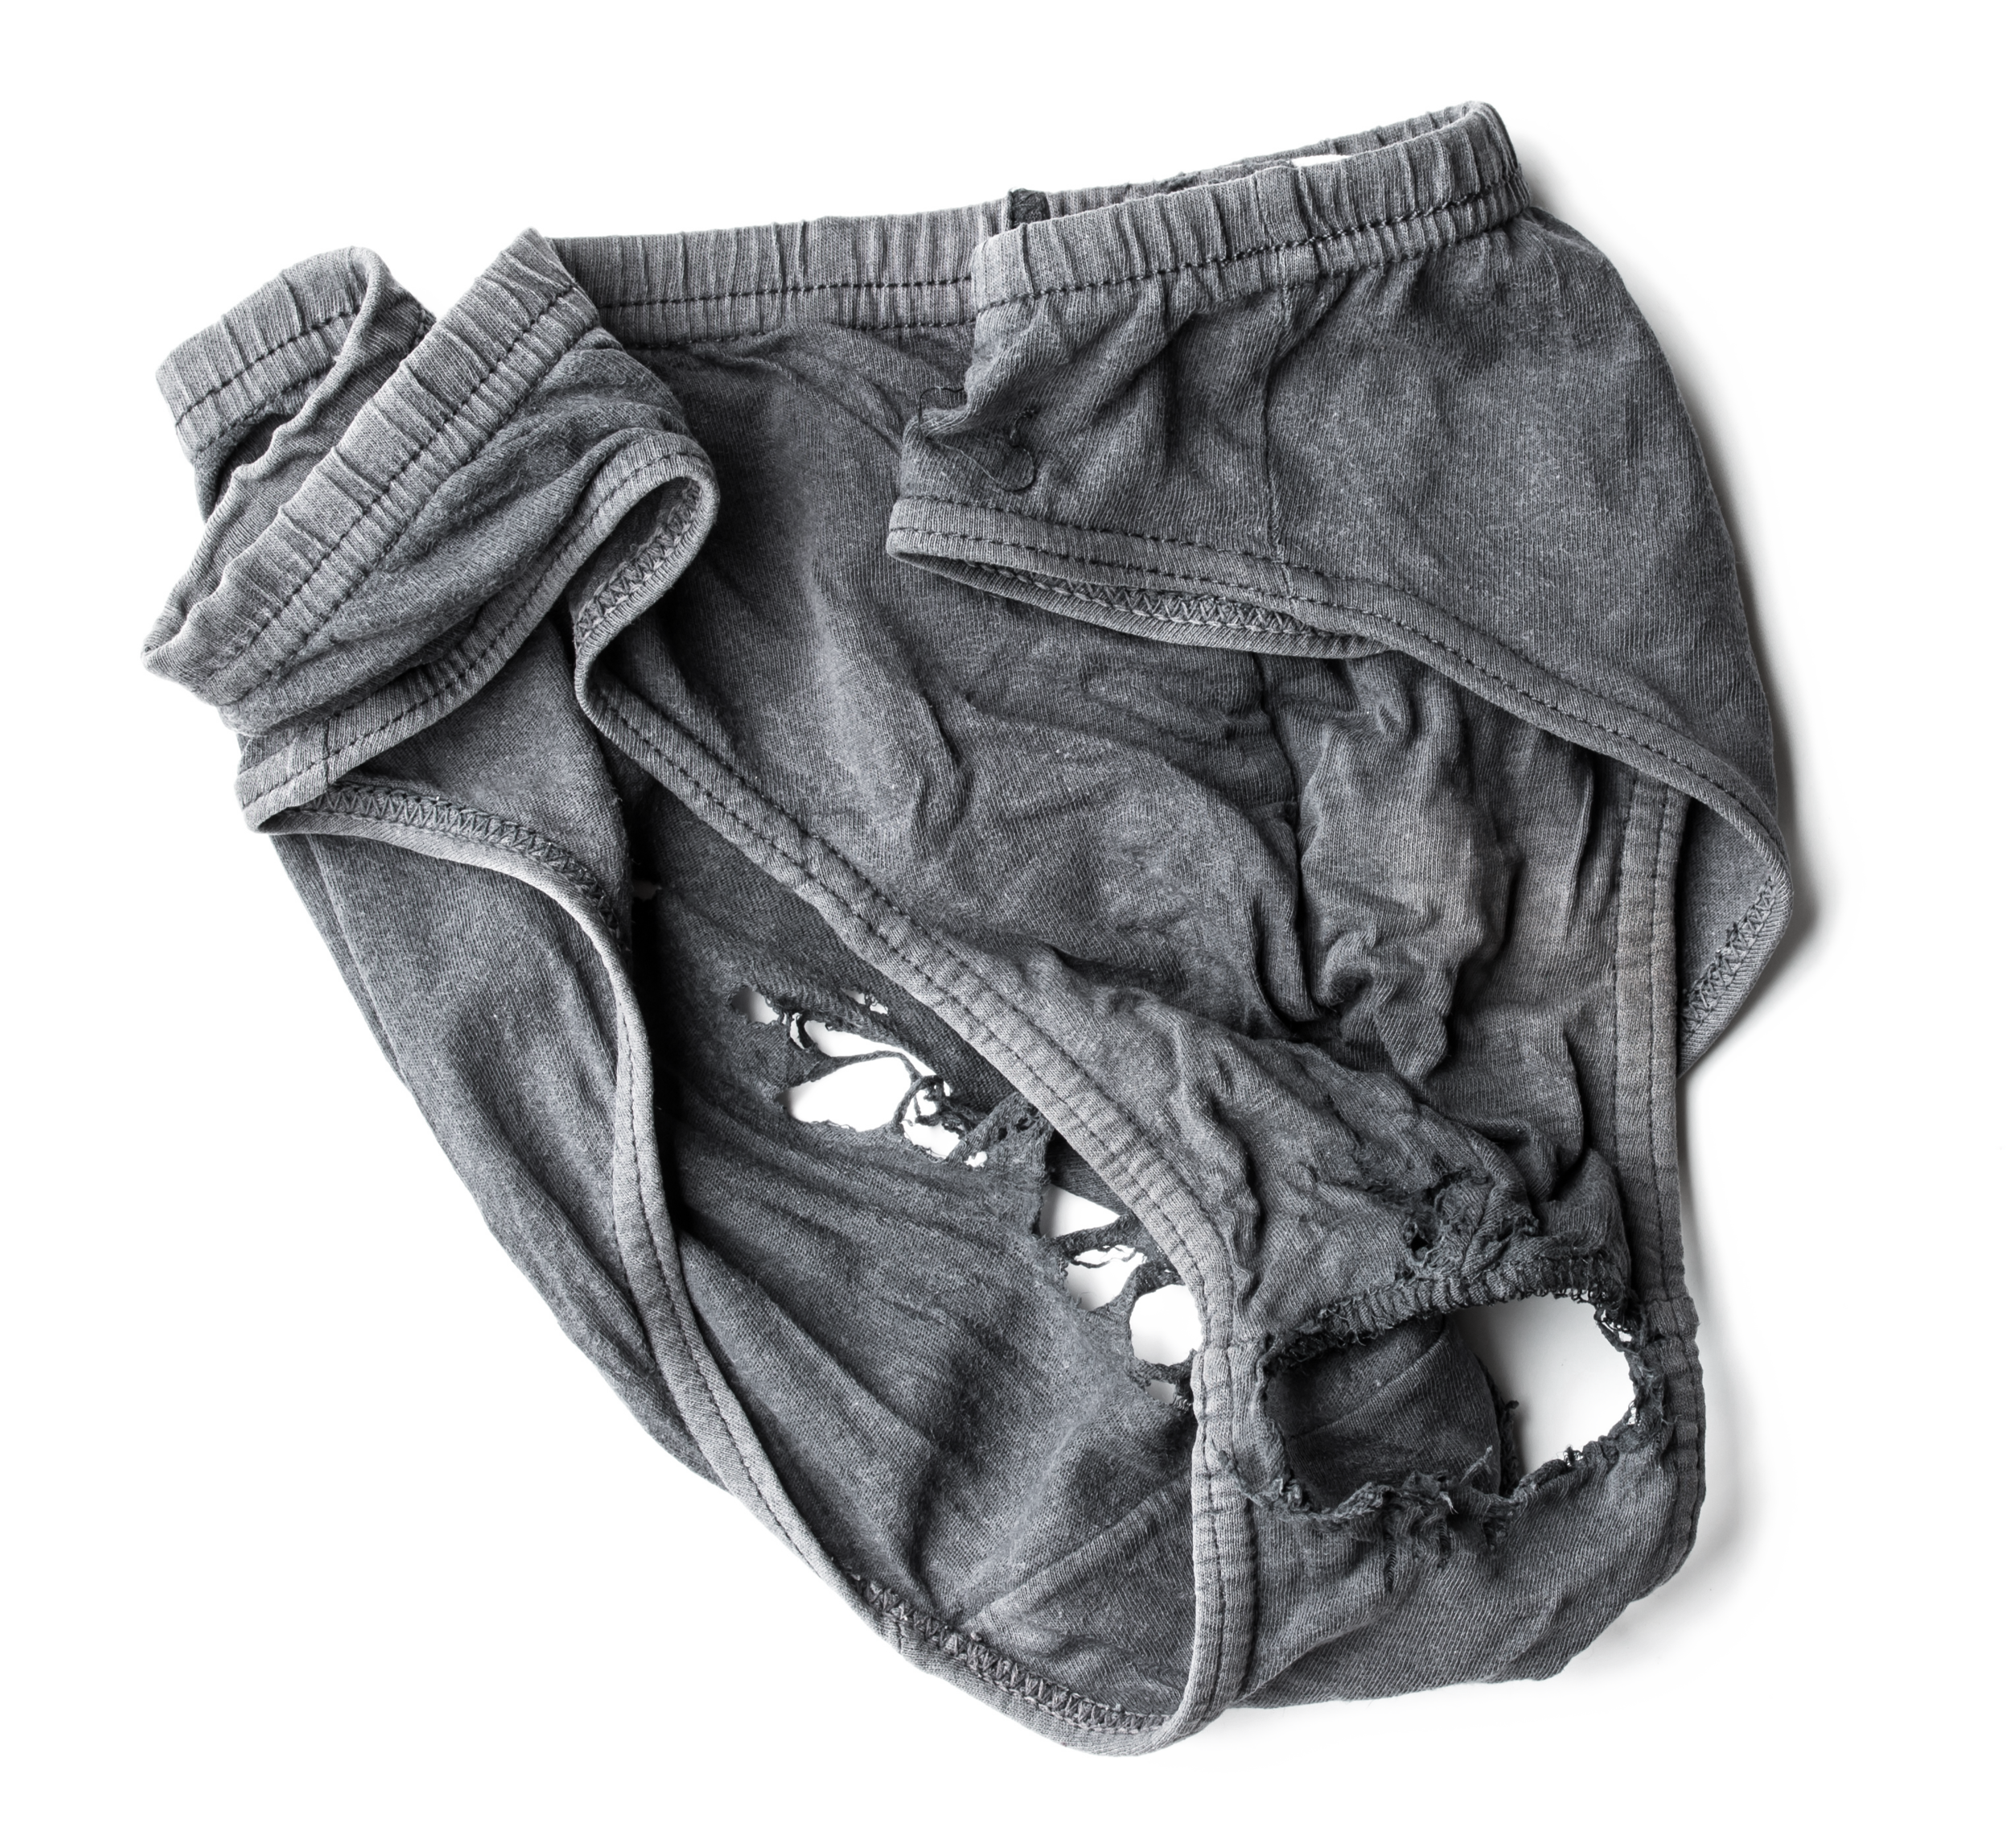 Martins's holey pants | © Martin's wife